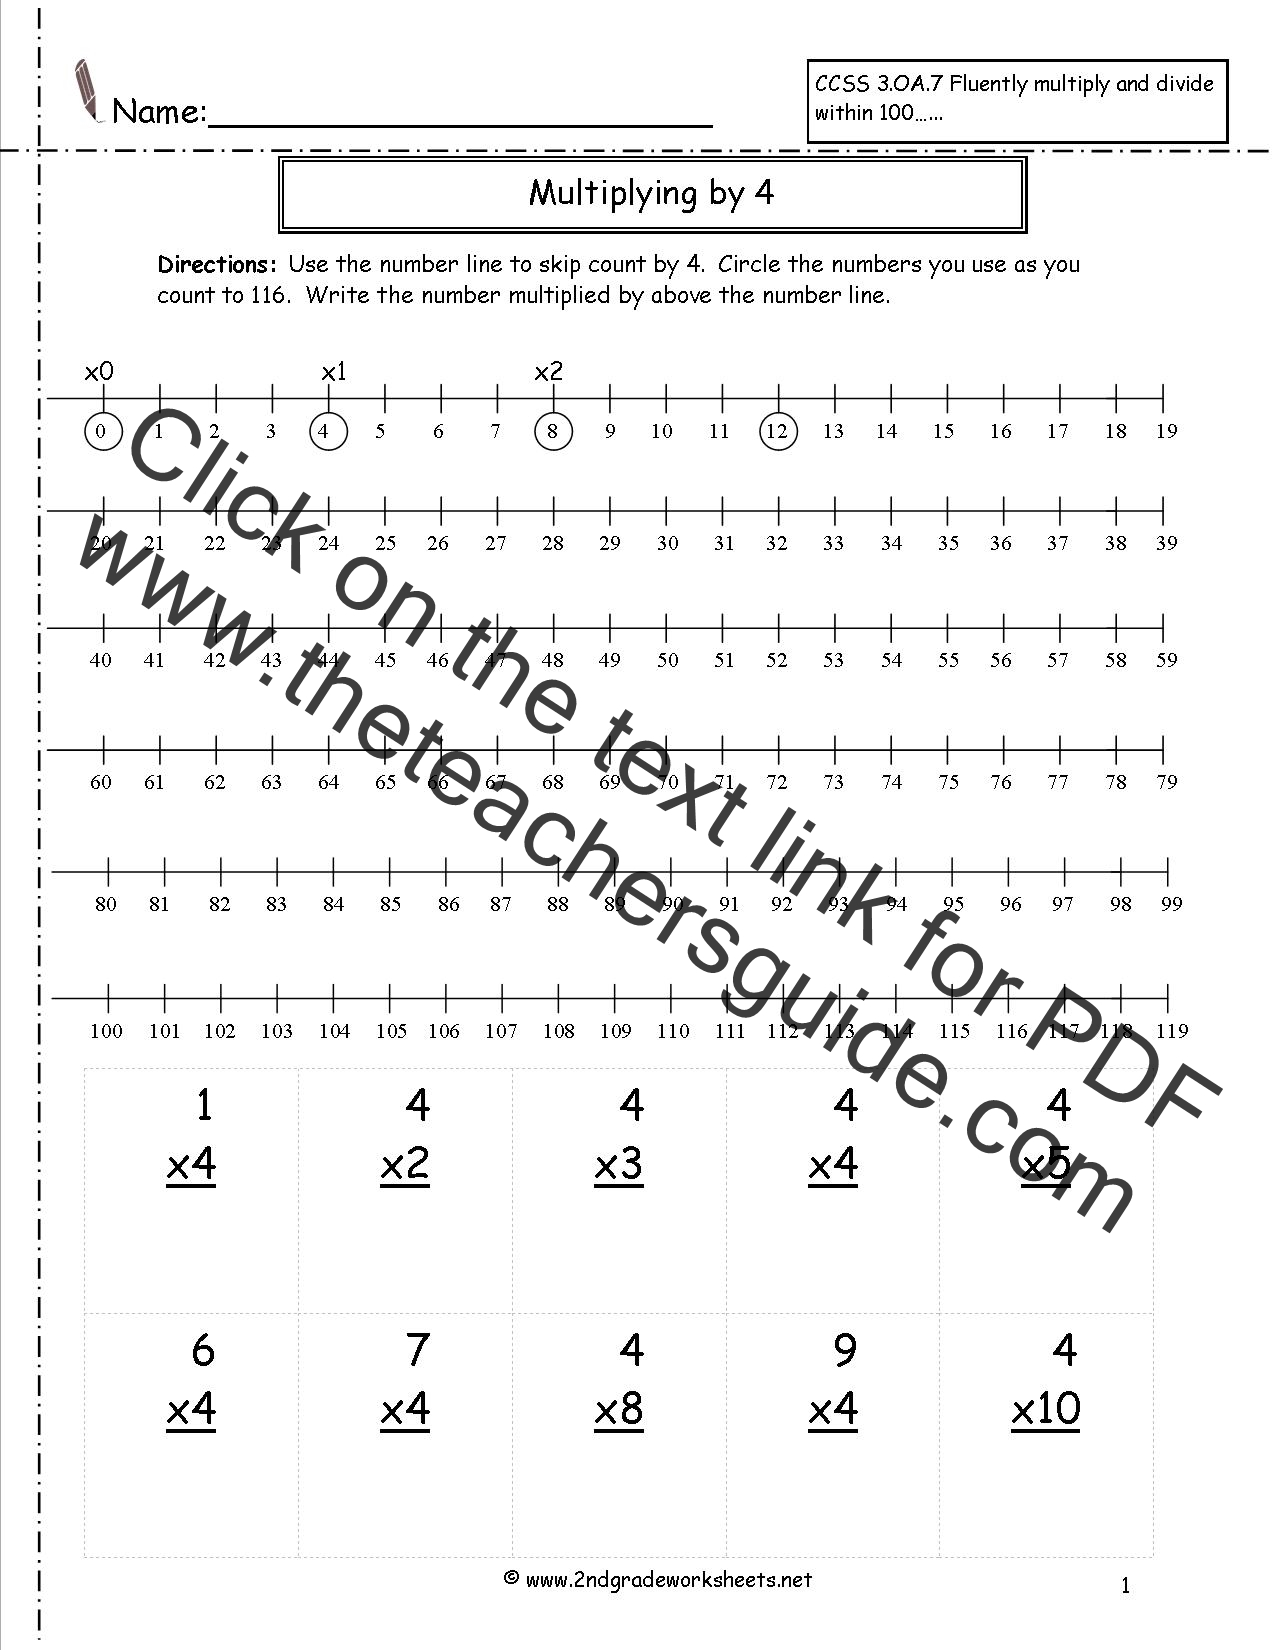 Worksheets 2nd Grade Multiplication Worksheets multiplication worksheets and printouts worksheet